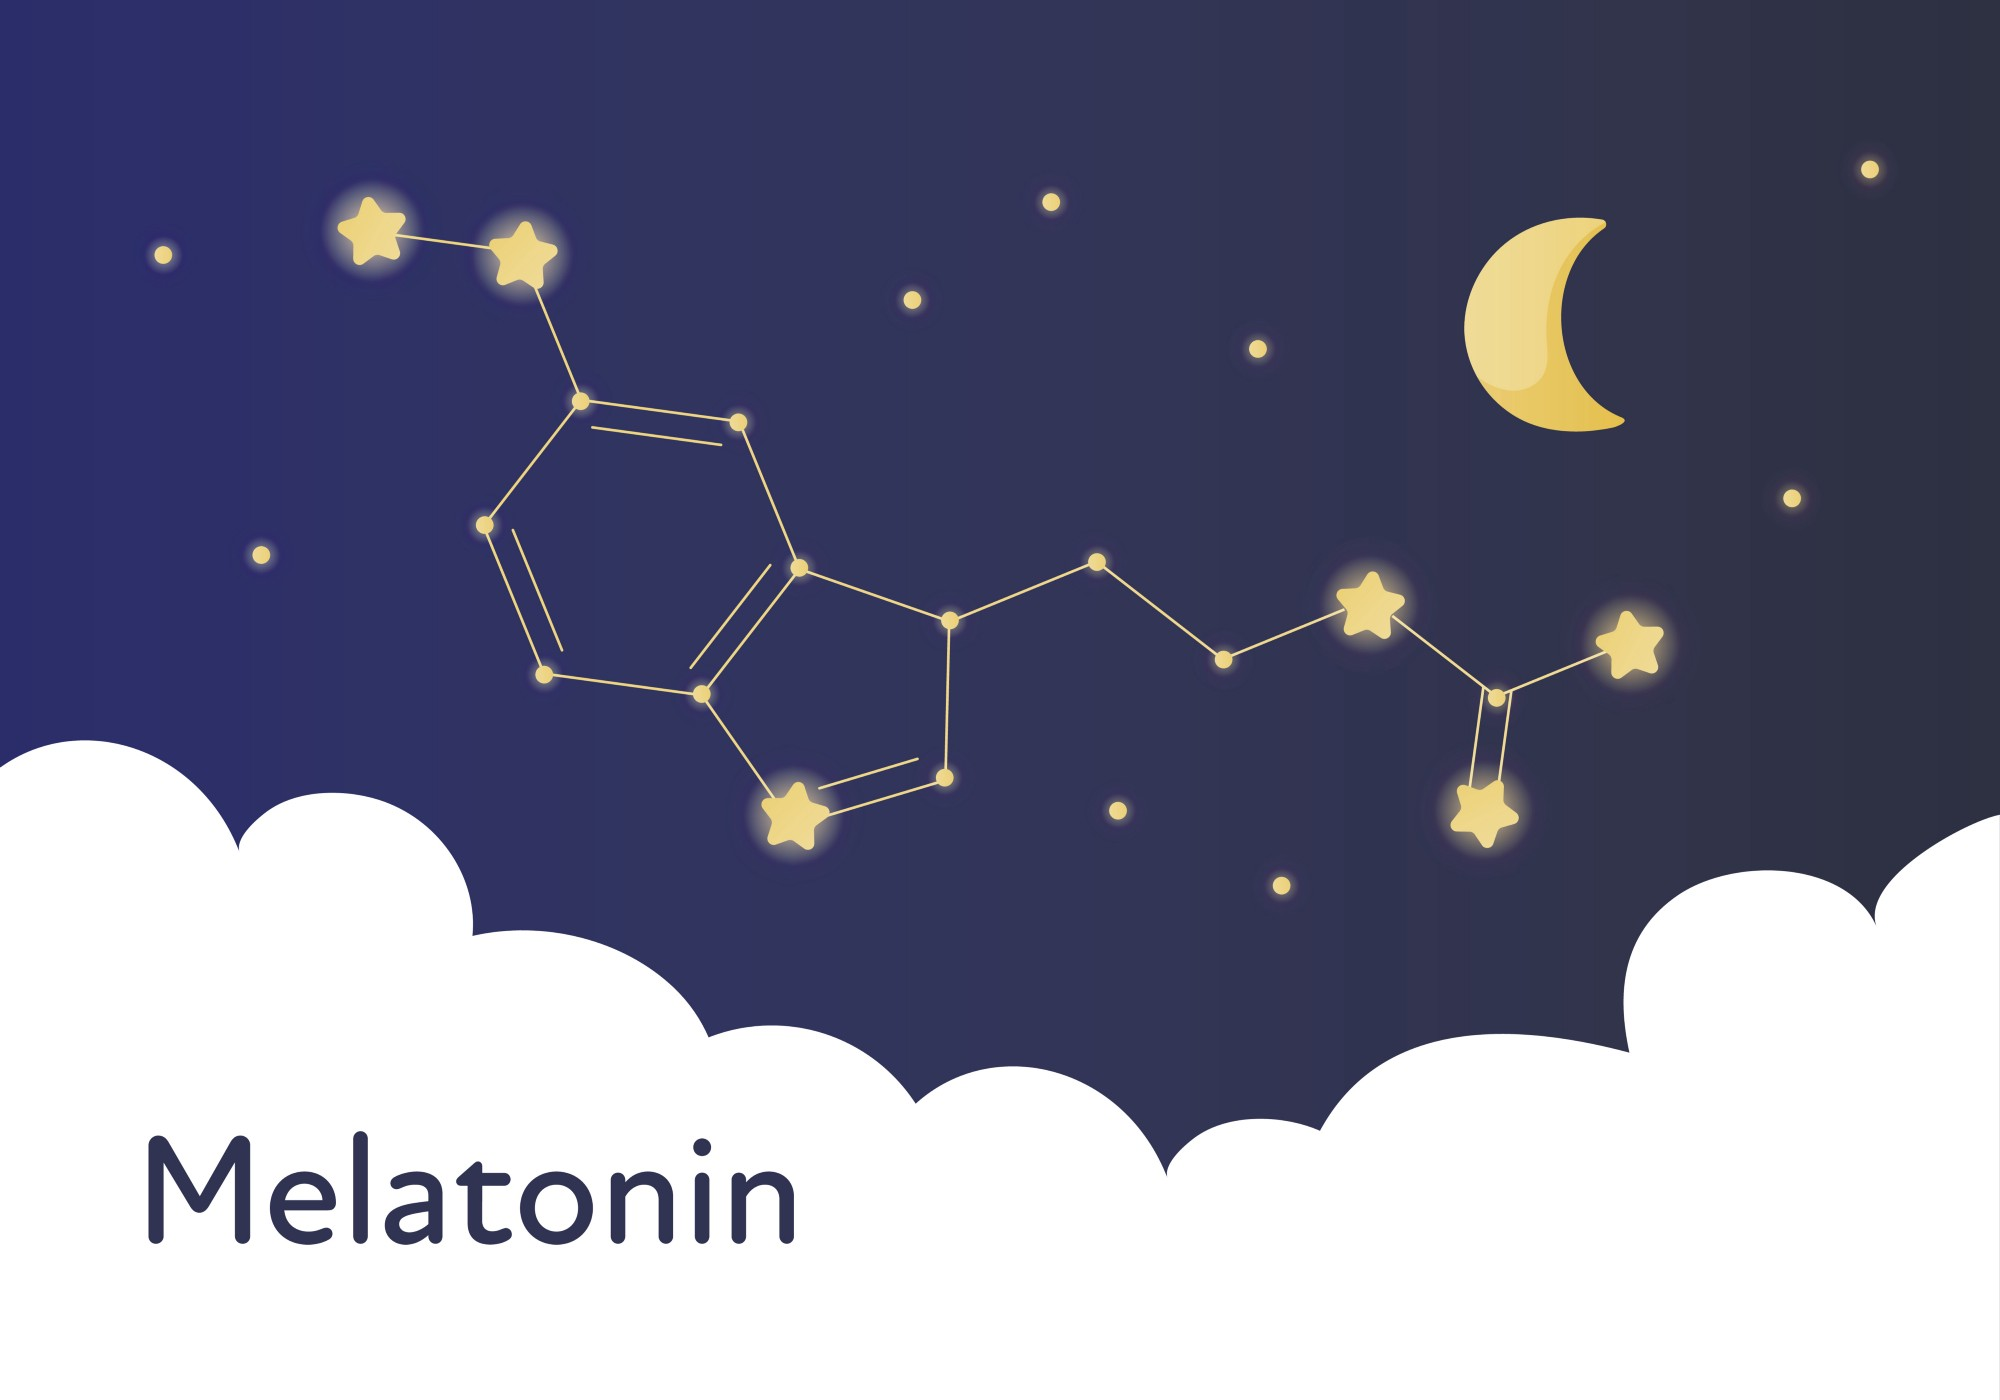 Molecular structure of melatonin drawn over the canvas of the night sky.